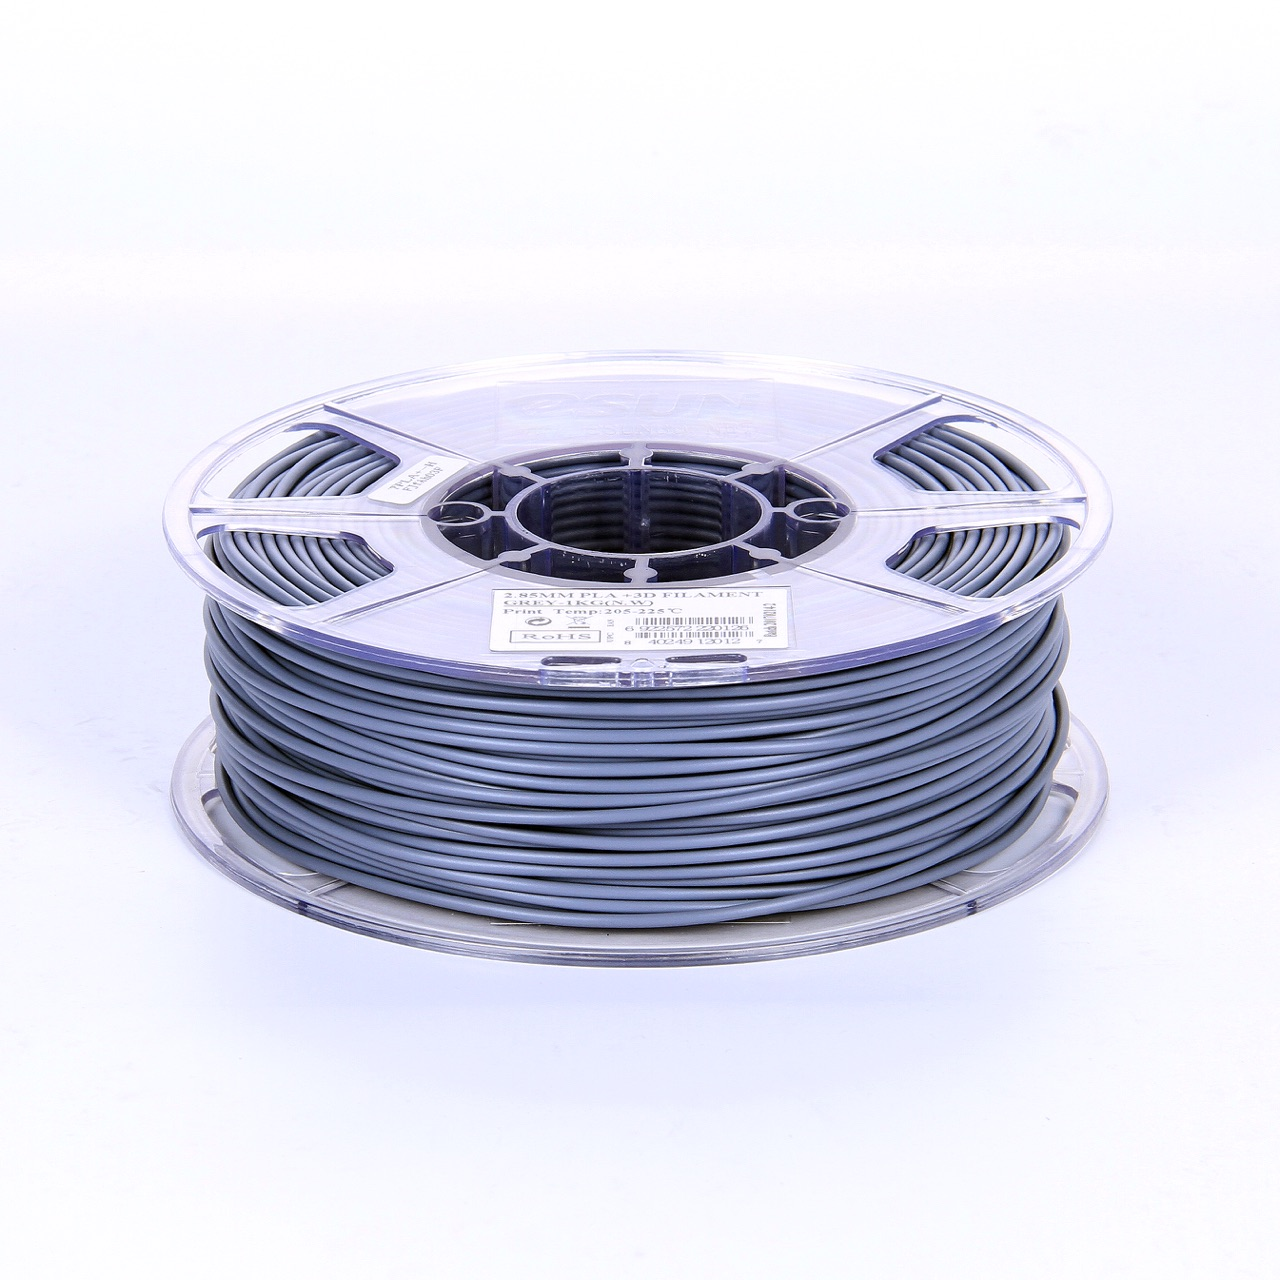 PLA filament, 2.85mm (3.0mm Compatible), Grey, 1kg/spool - MK-PLA300GR